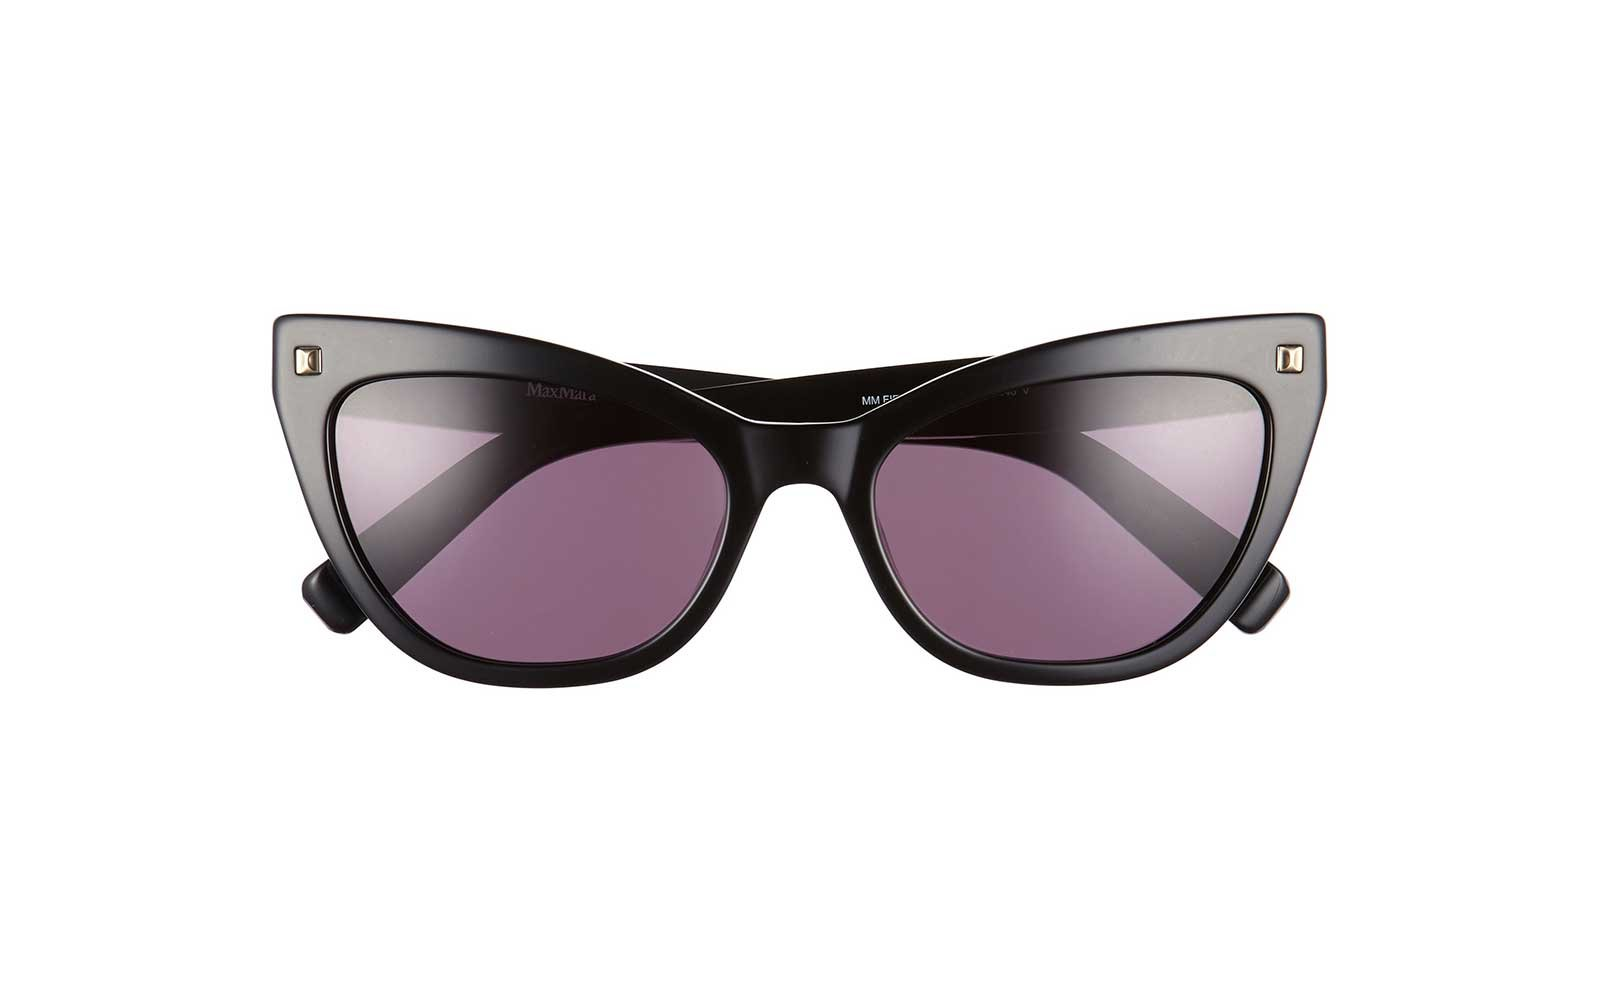 d440579cfda2 The Best Sunglasses to Travel With | Travel + Leisure